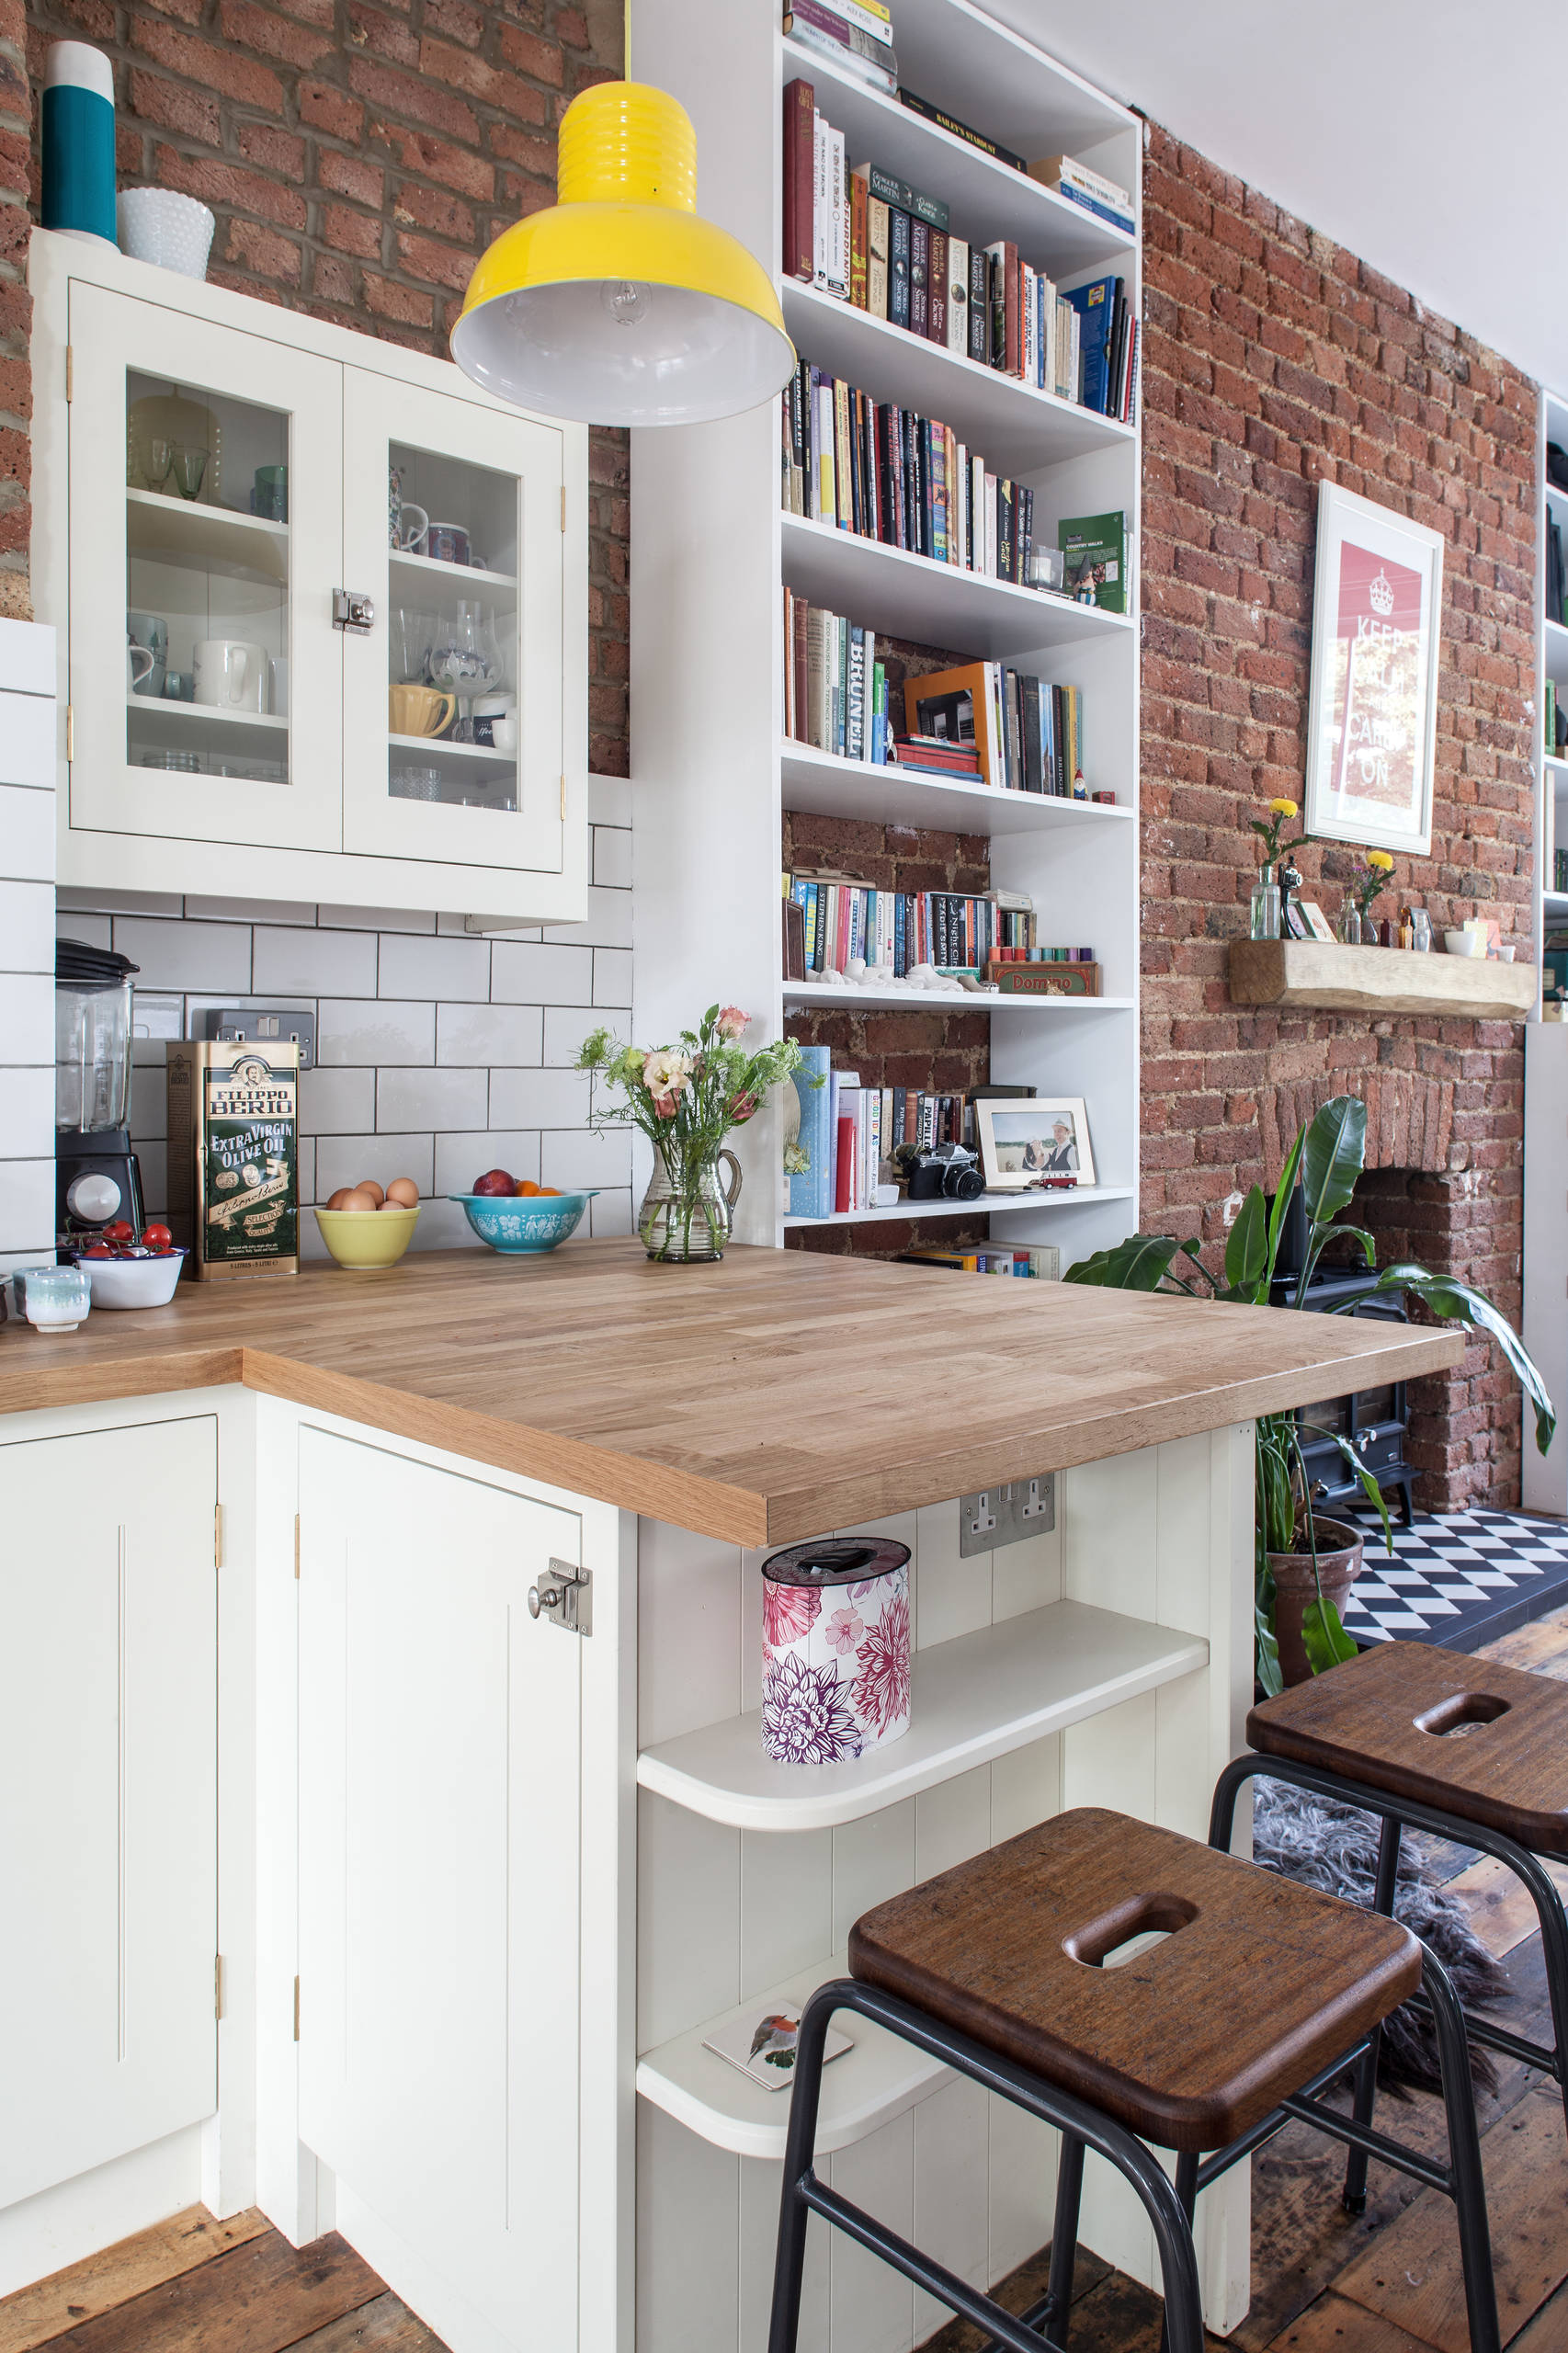 9 Kitchen Bars and Islands That Use Space Wisely   Houzz UK